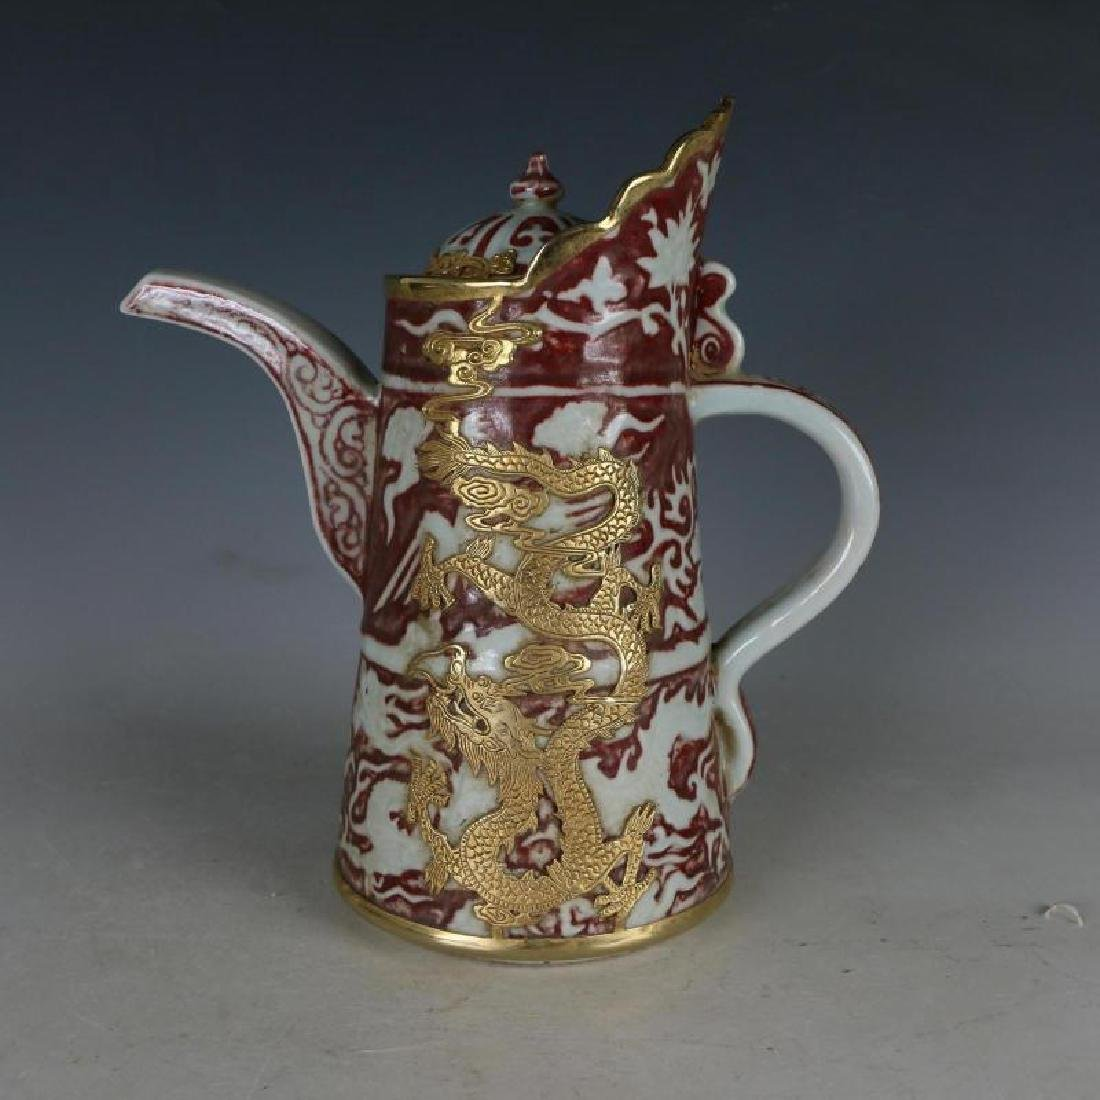 a Nice Inlaid Gold Underglaze Red Handle Kettle